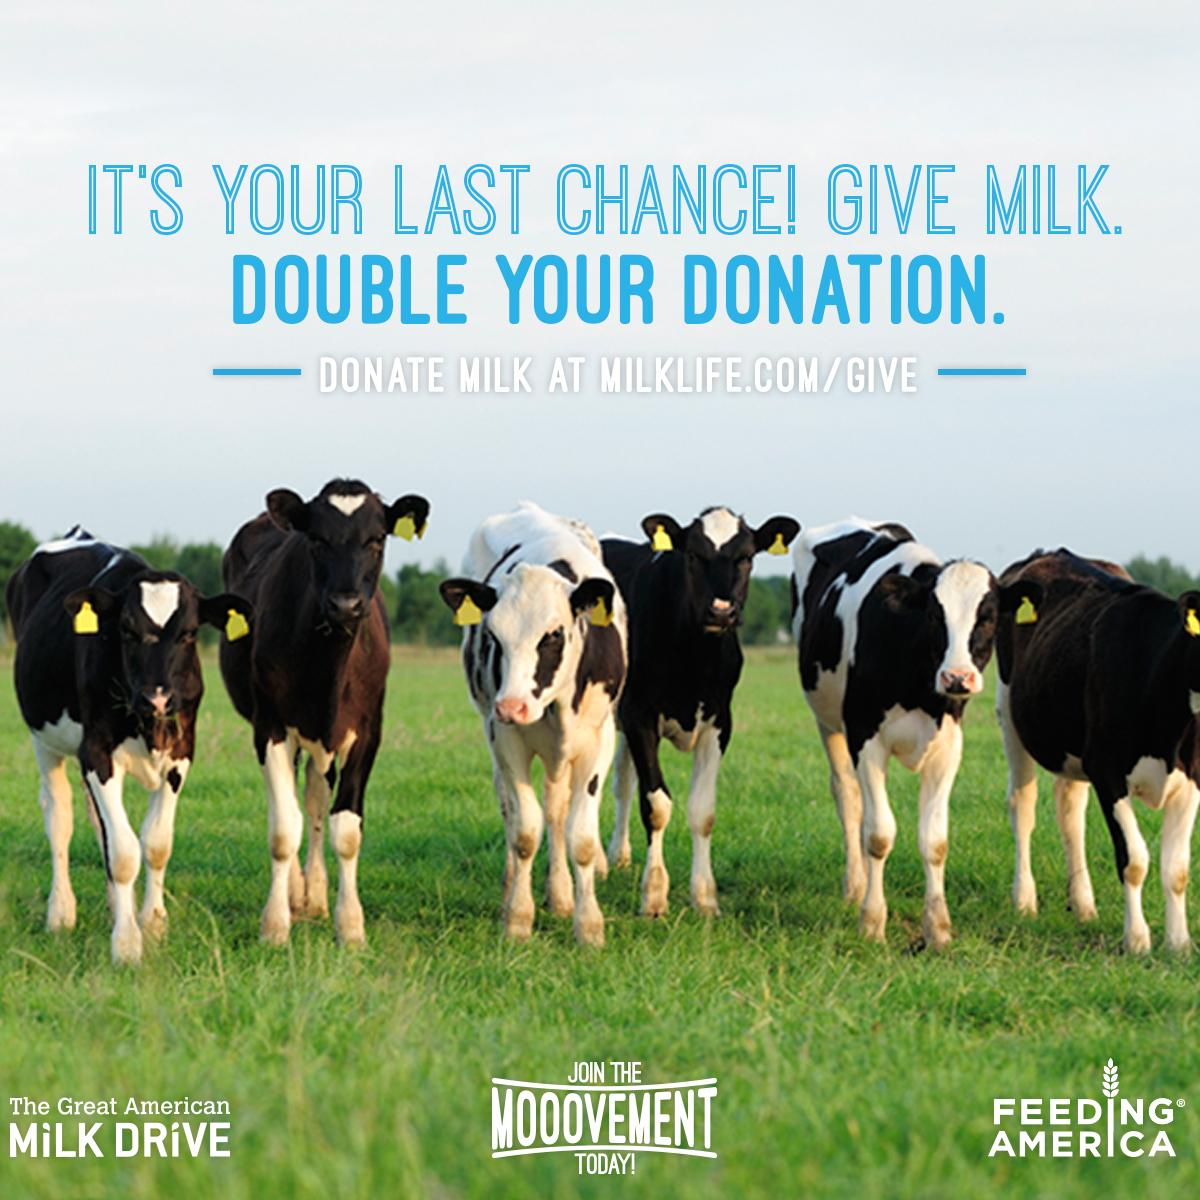 The Mooovement isn't over yet. You can still double your milk donation...